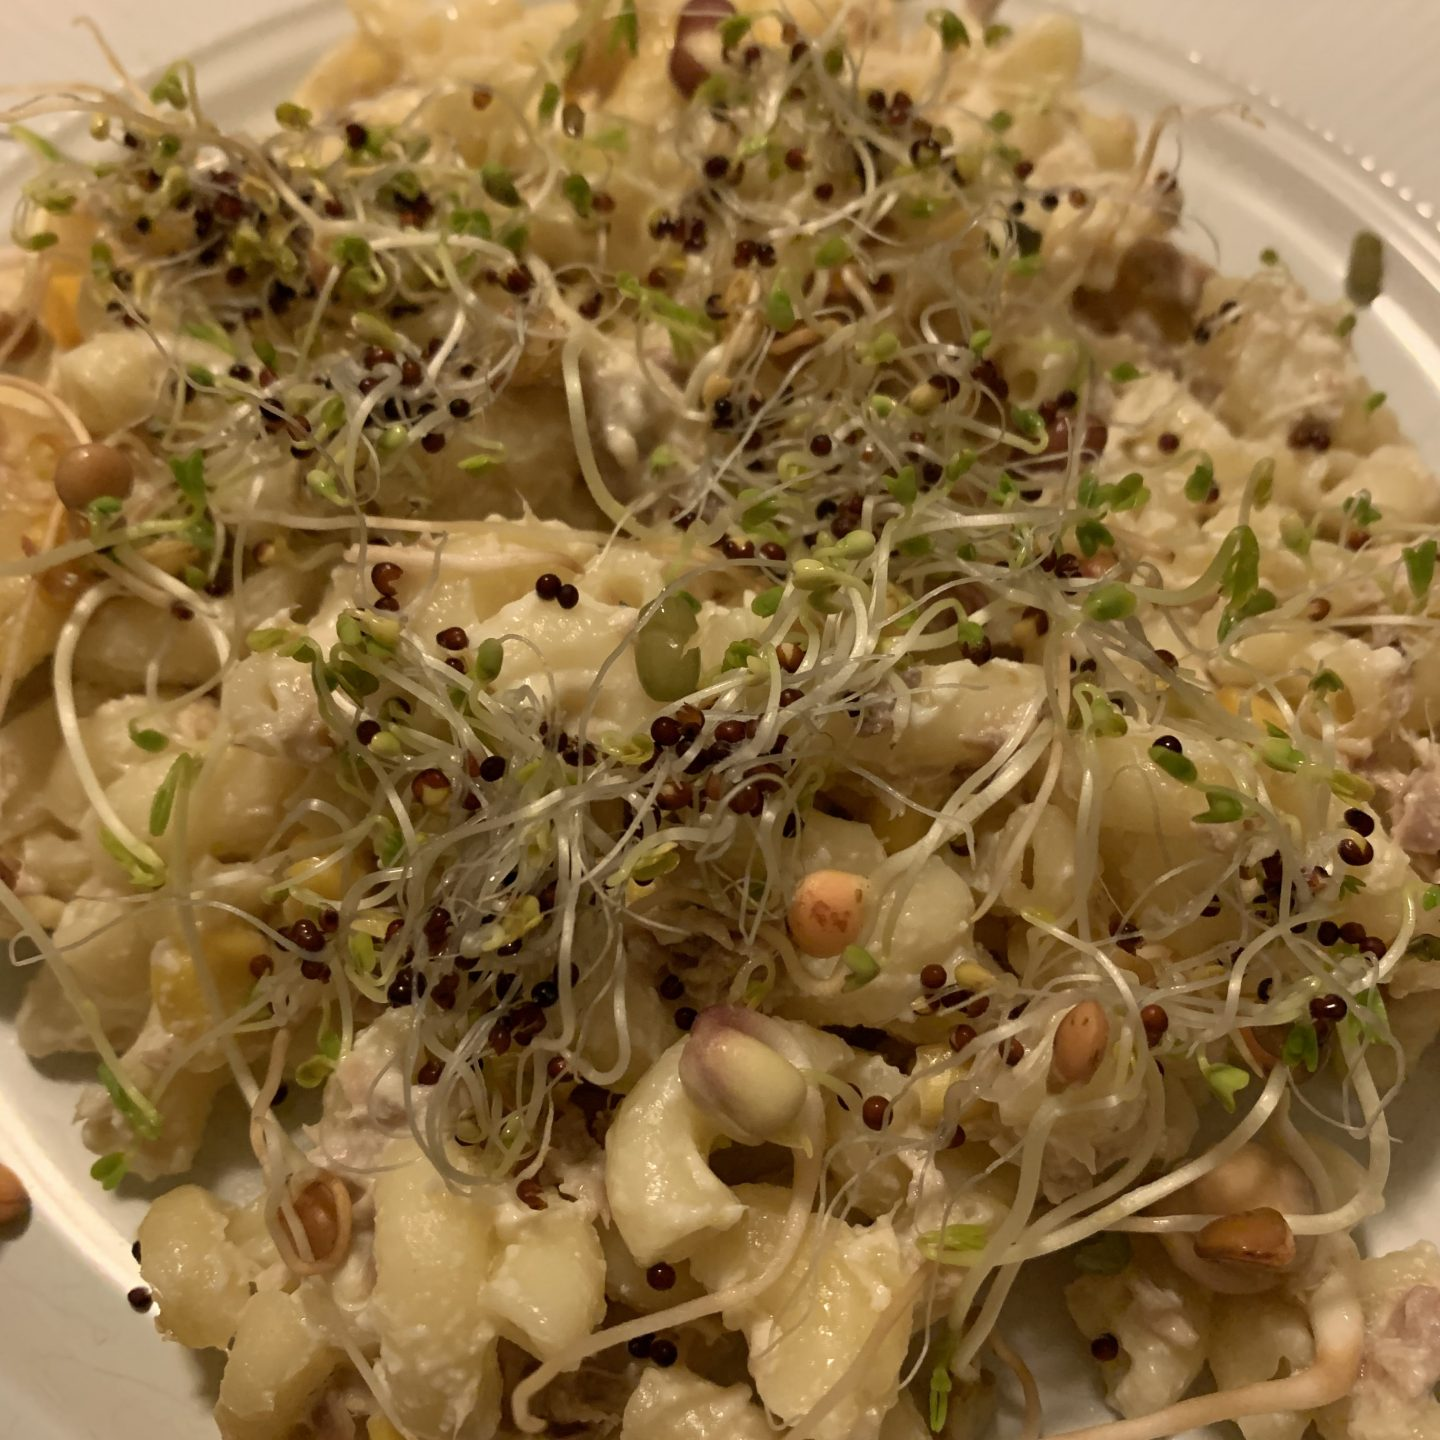 Mac cheese with sprouts on top